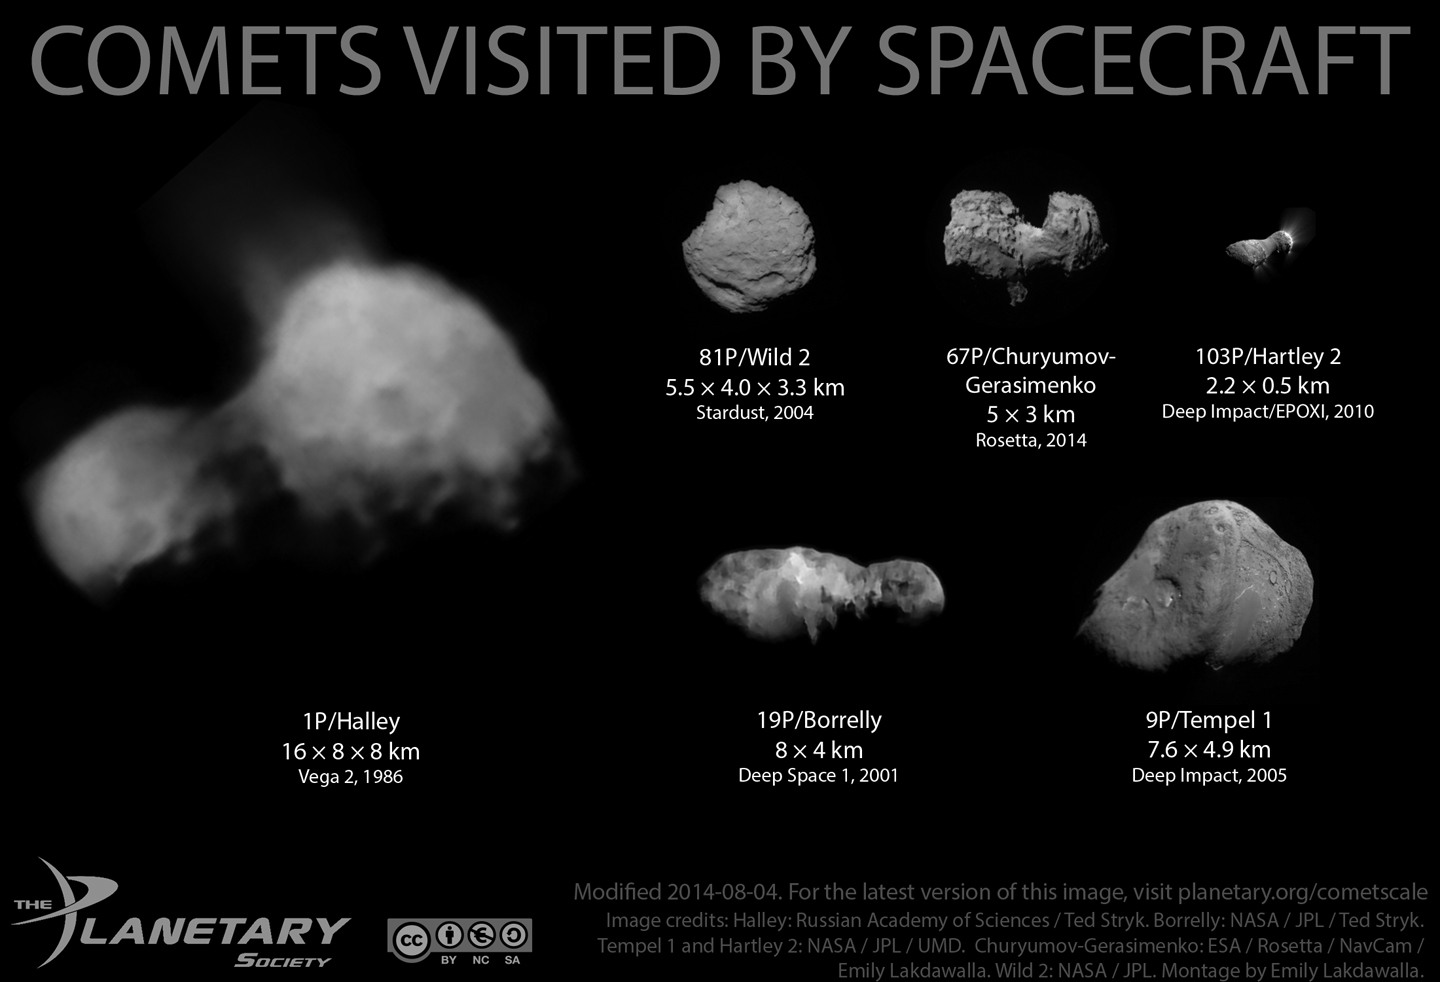 Comets and Spacecraft